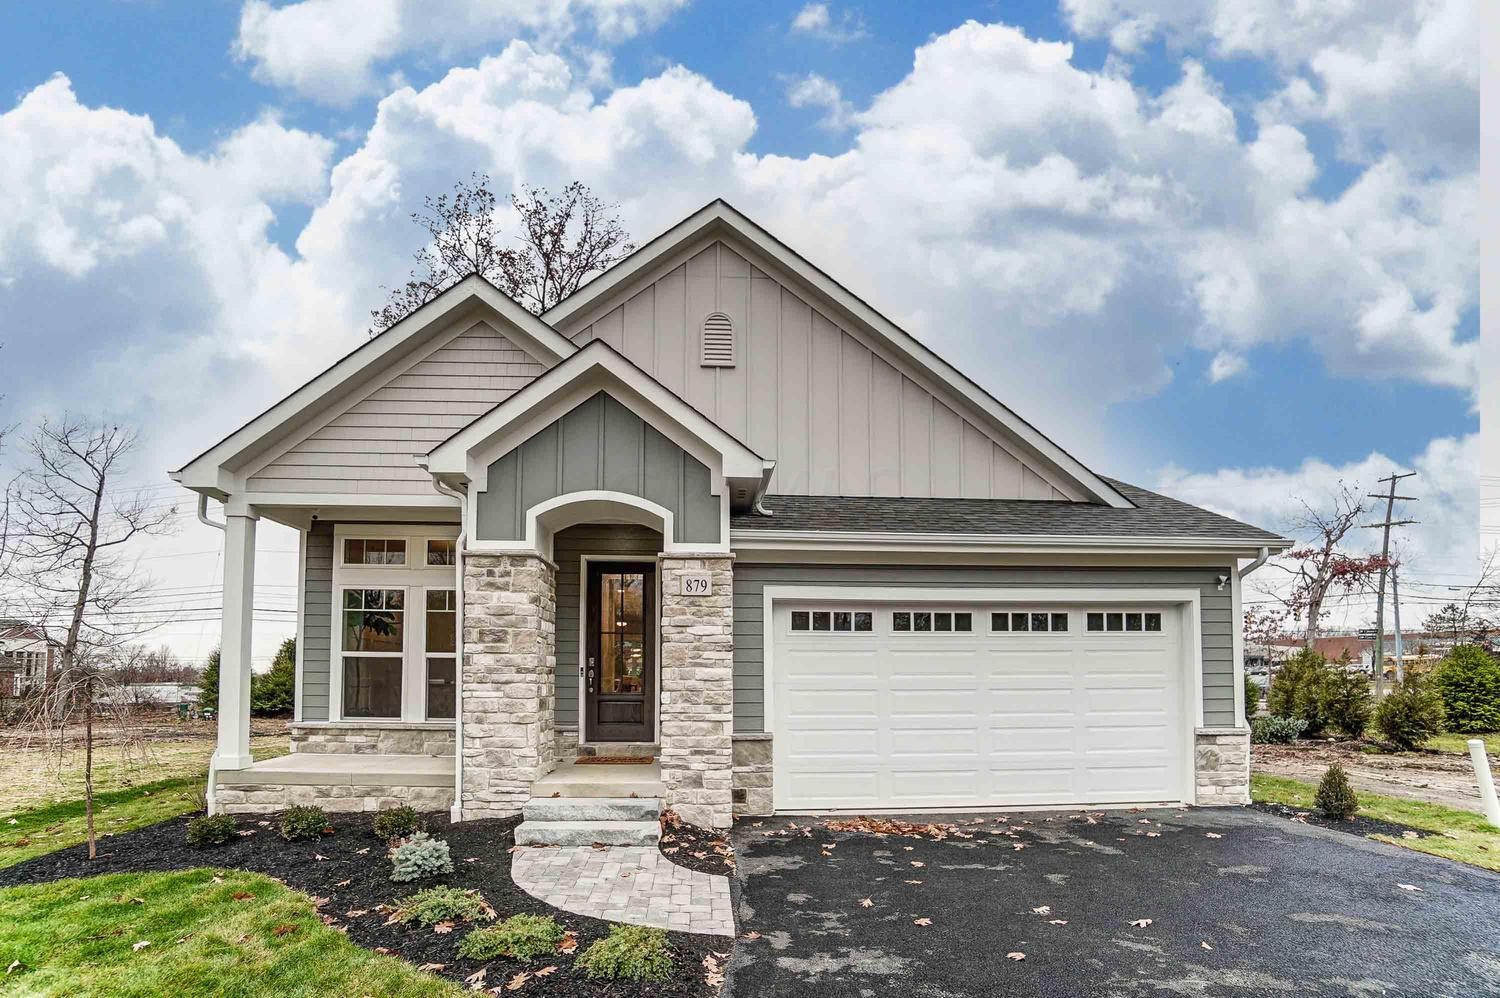 Photo of Pinnacle Pointe Place, Gahanna, OH 43230